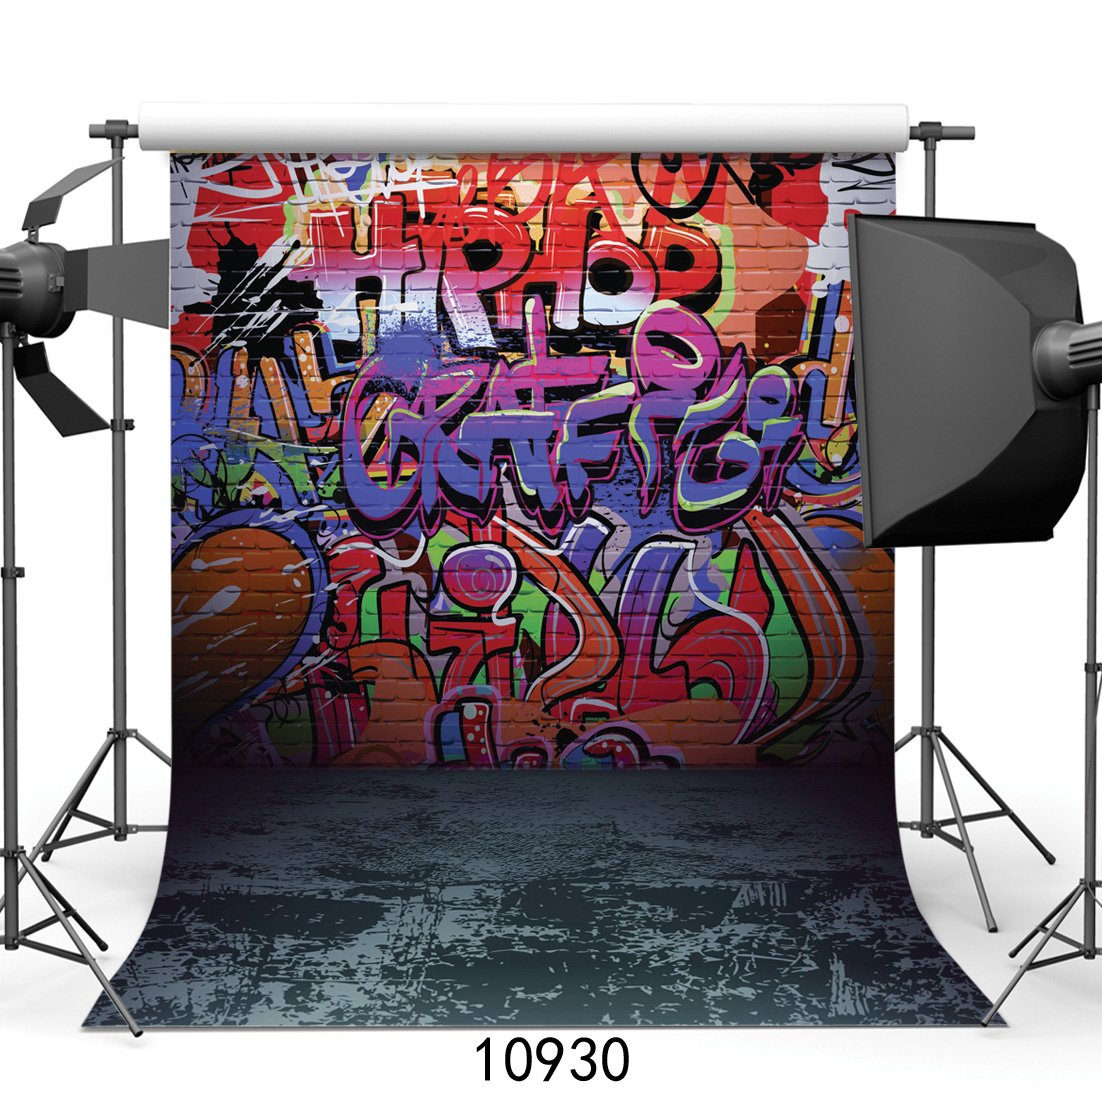 SJOLOON 5x7ft Graffiti Style Vinyl Photography Backdrop Customized Photo Background Studio Prop 10930 by SJOLOON (Image #1)